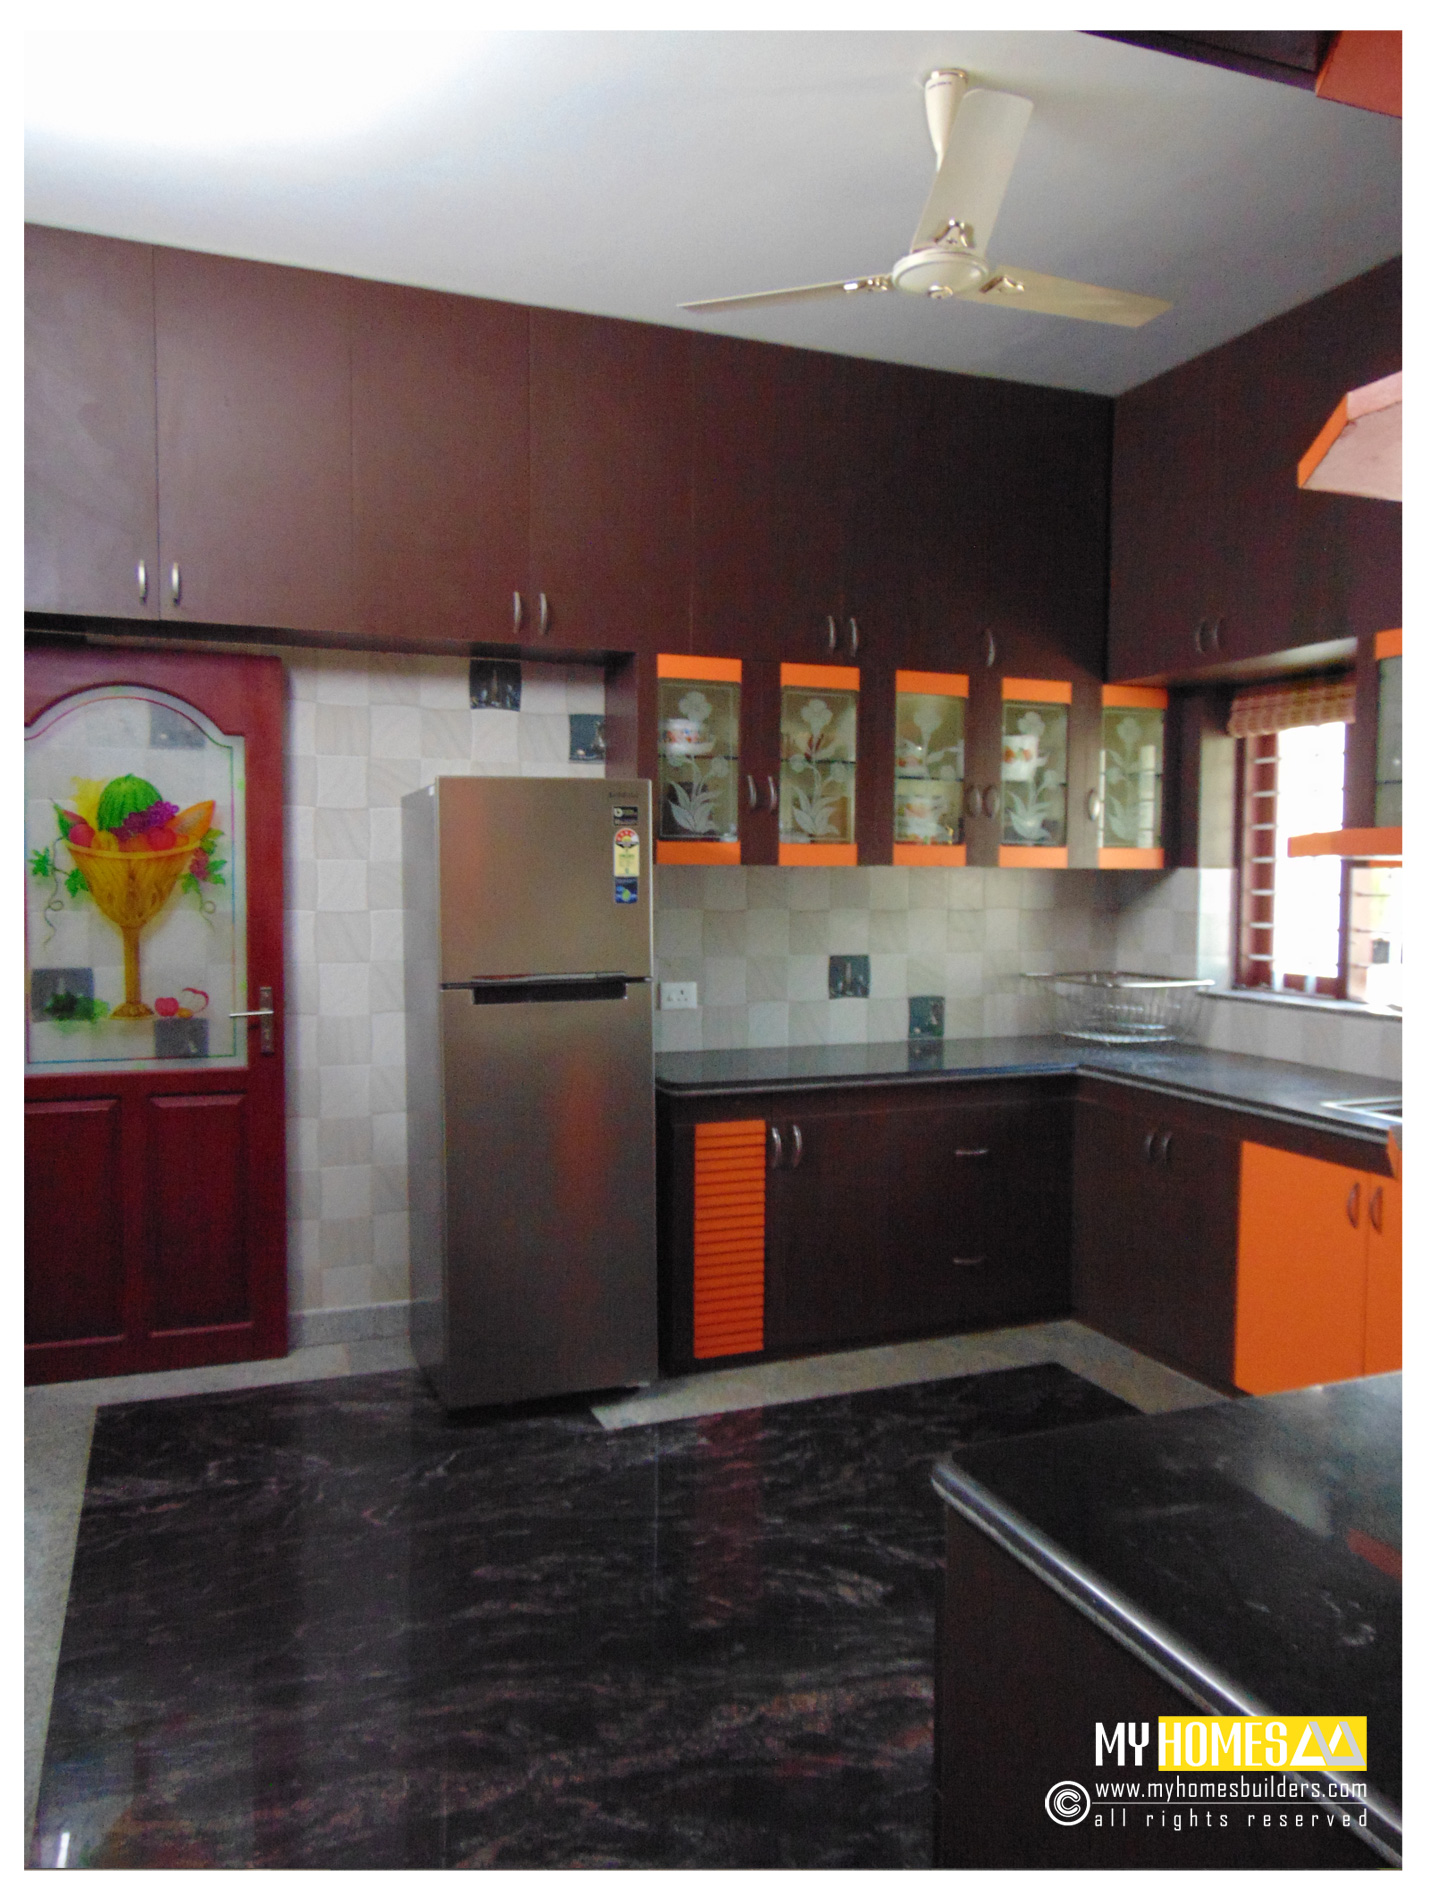 Kerala kitchen designs idea in modular style for house in india - Interior design new home ideas ...